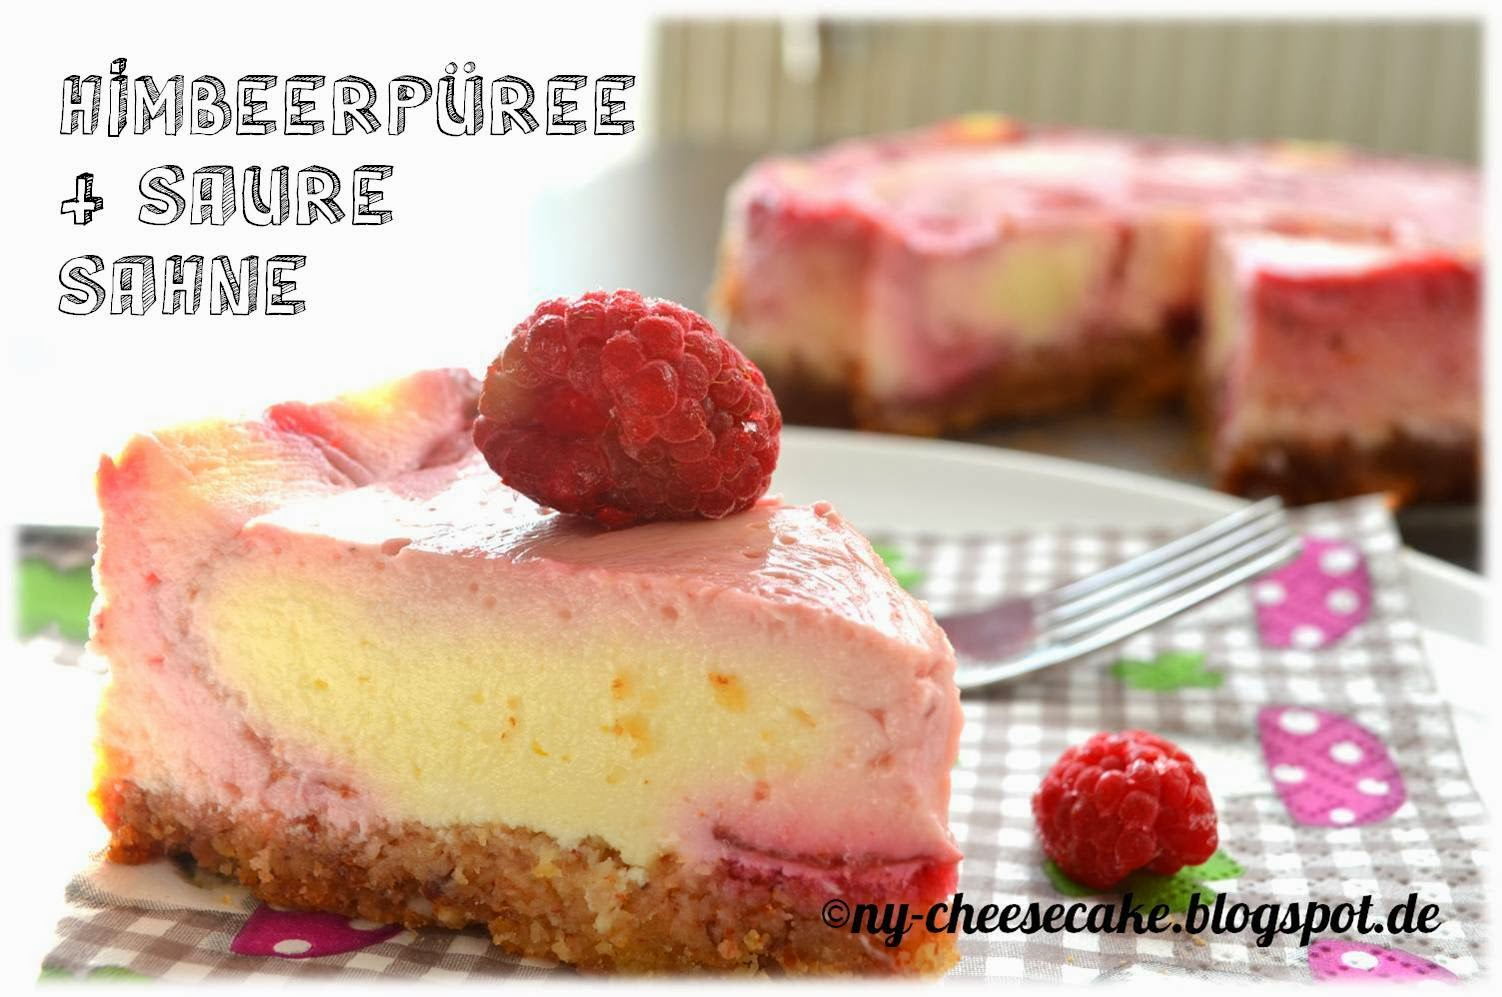 https://reihe11.com/2013/02/17/say-cheese-teil-1-new-york-cheesecake-mit-himbeerpueree-und-saurer-sahne/